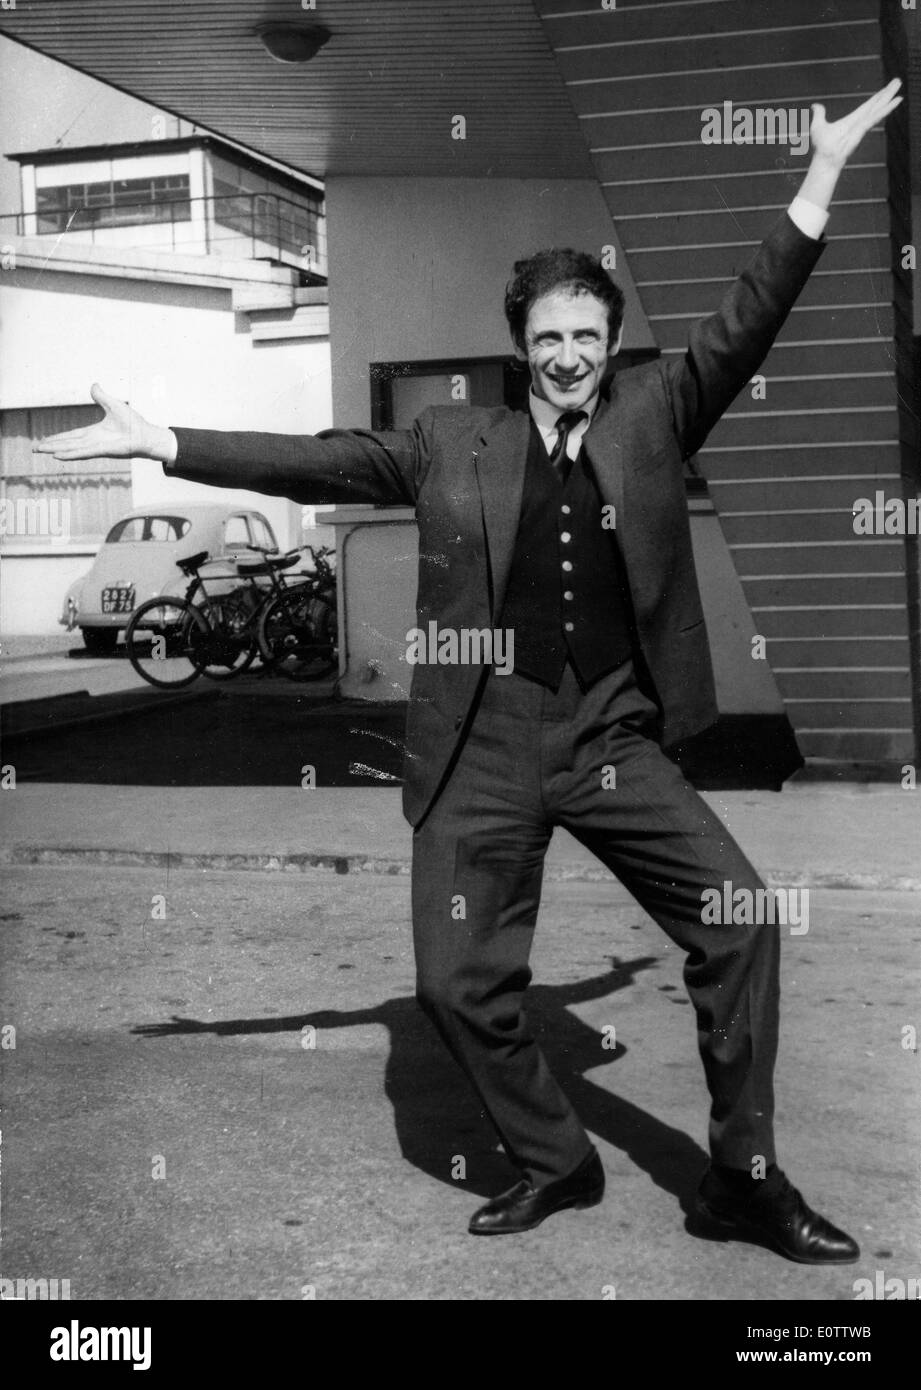 French mime Marcel Marceau in street clothes - Stock Image